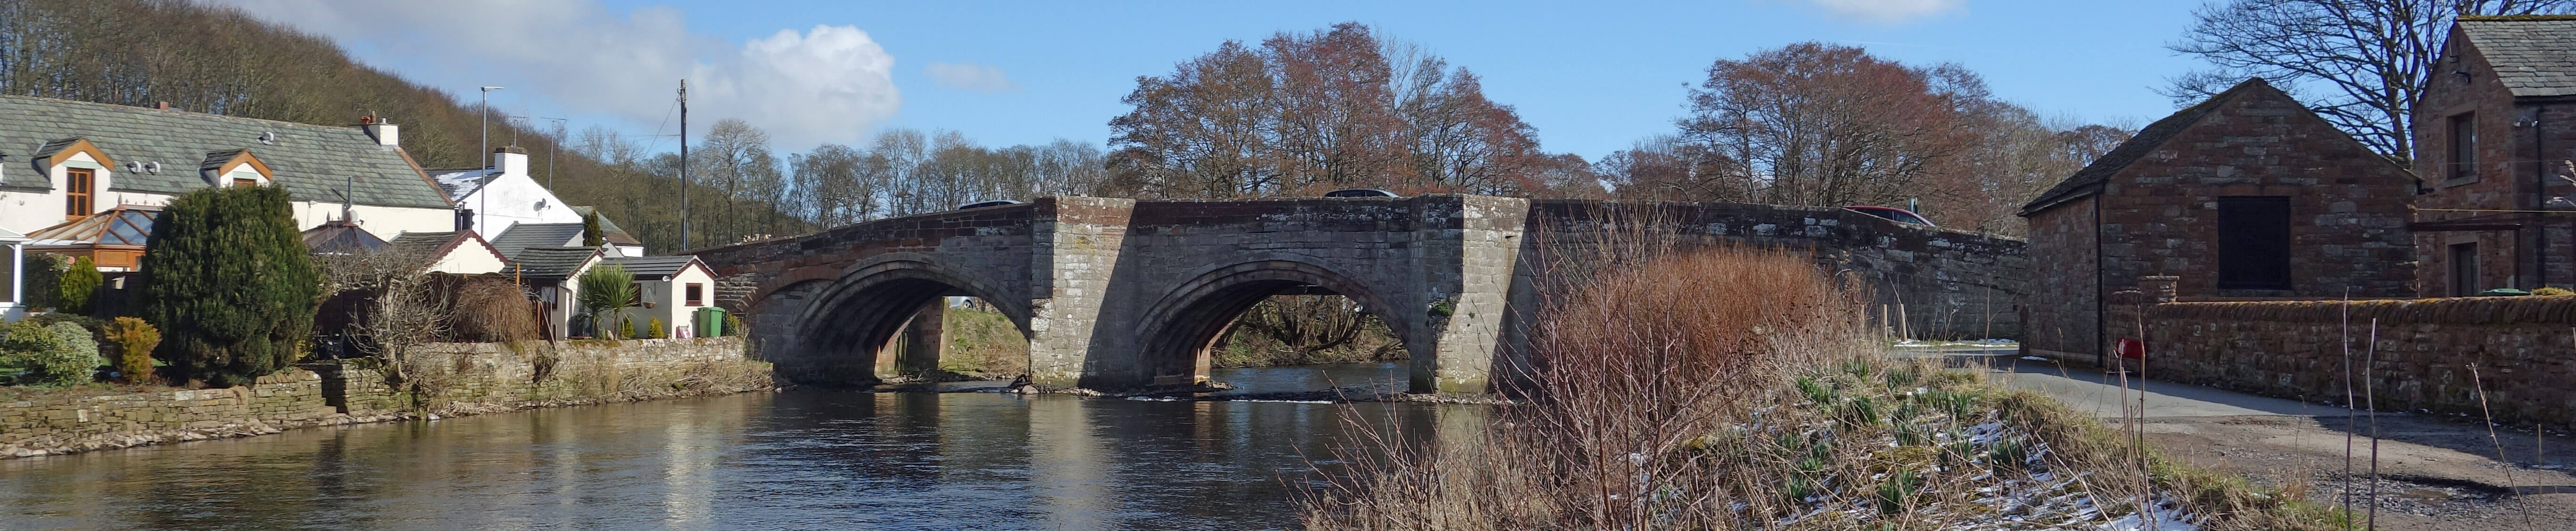 Eamont Bridge